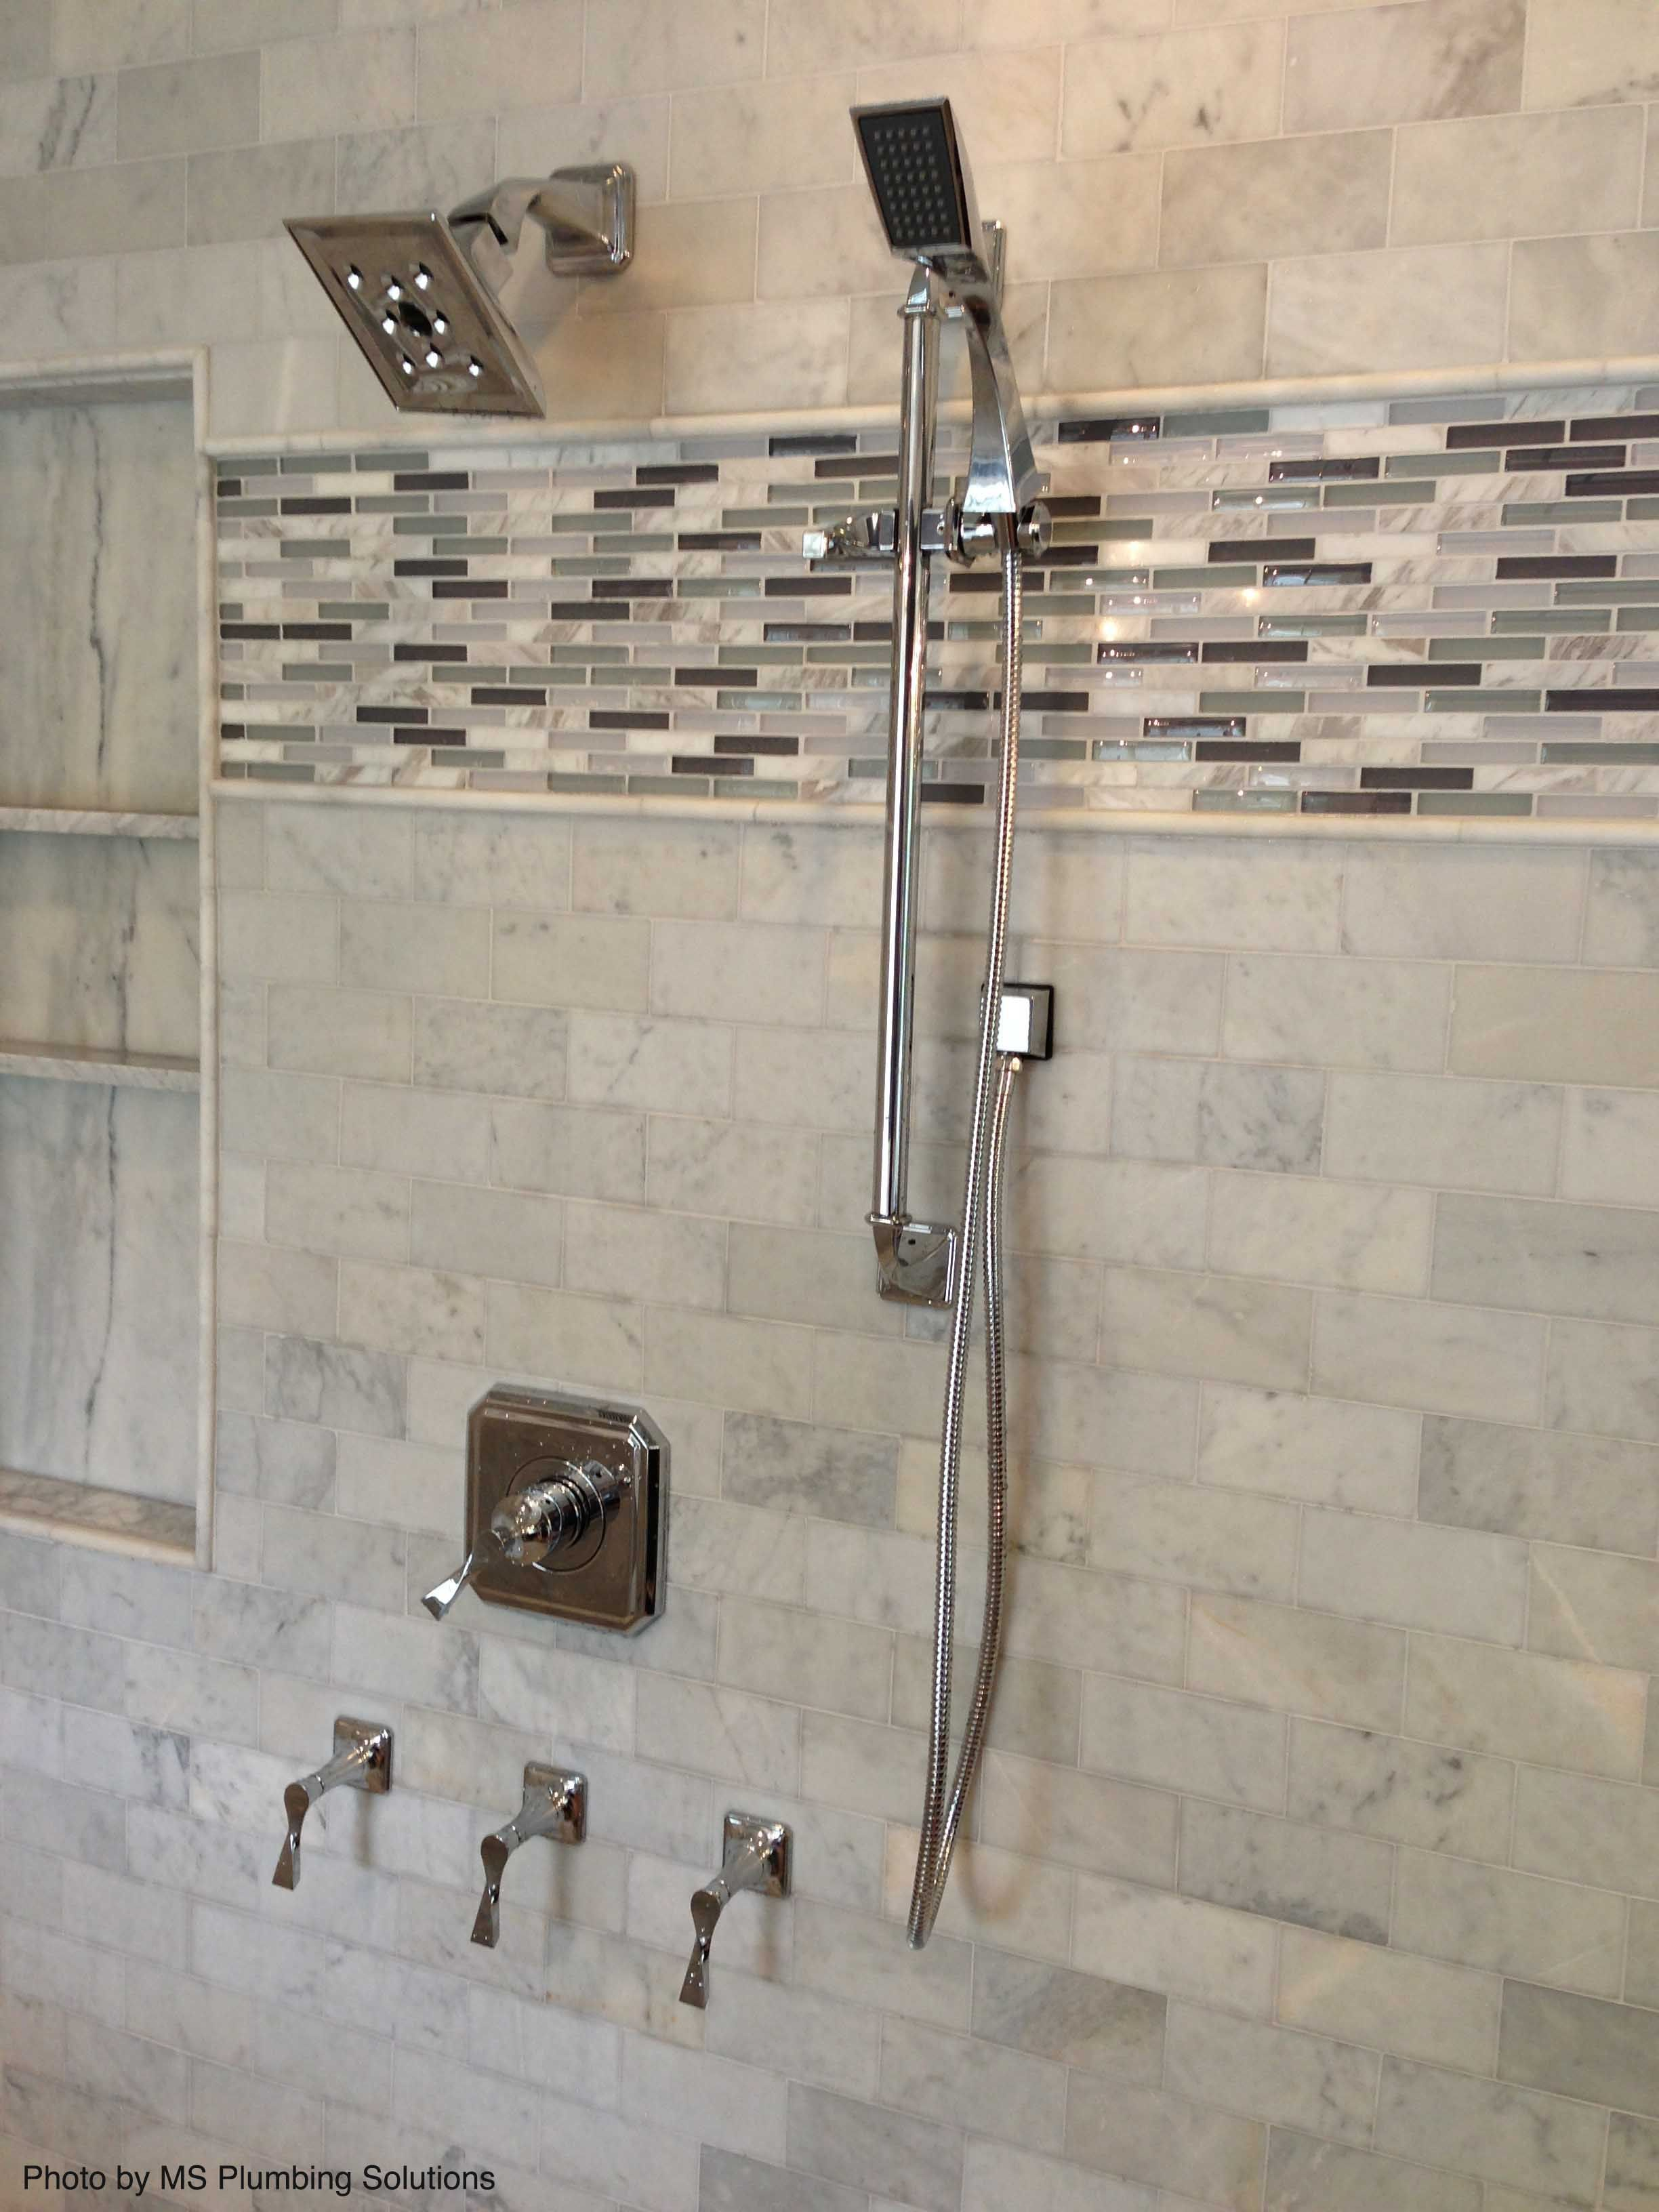 bathroom remodel return on investment guide - Bathroom Remodel Return On Investment